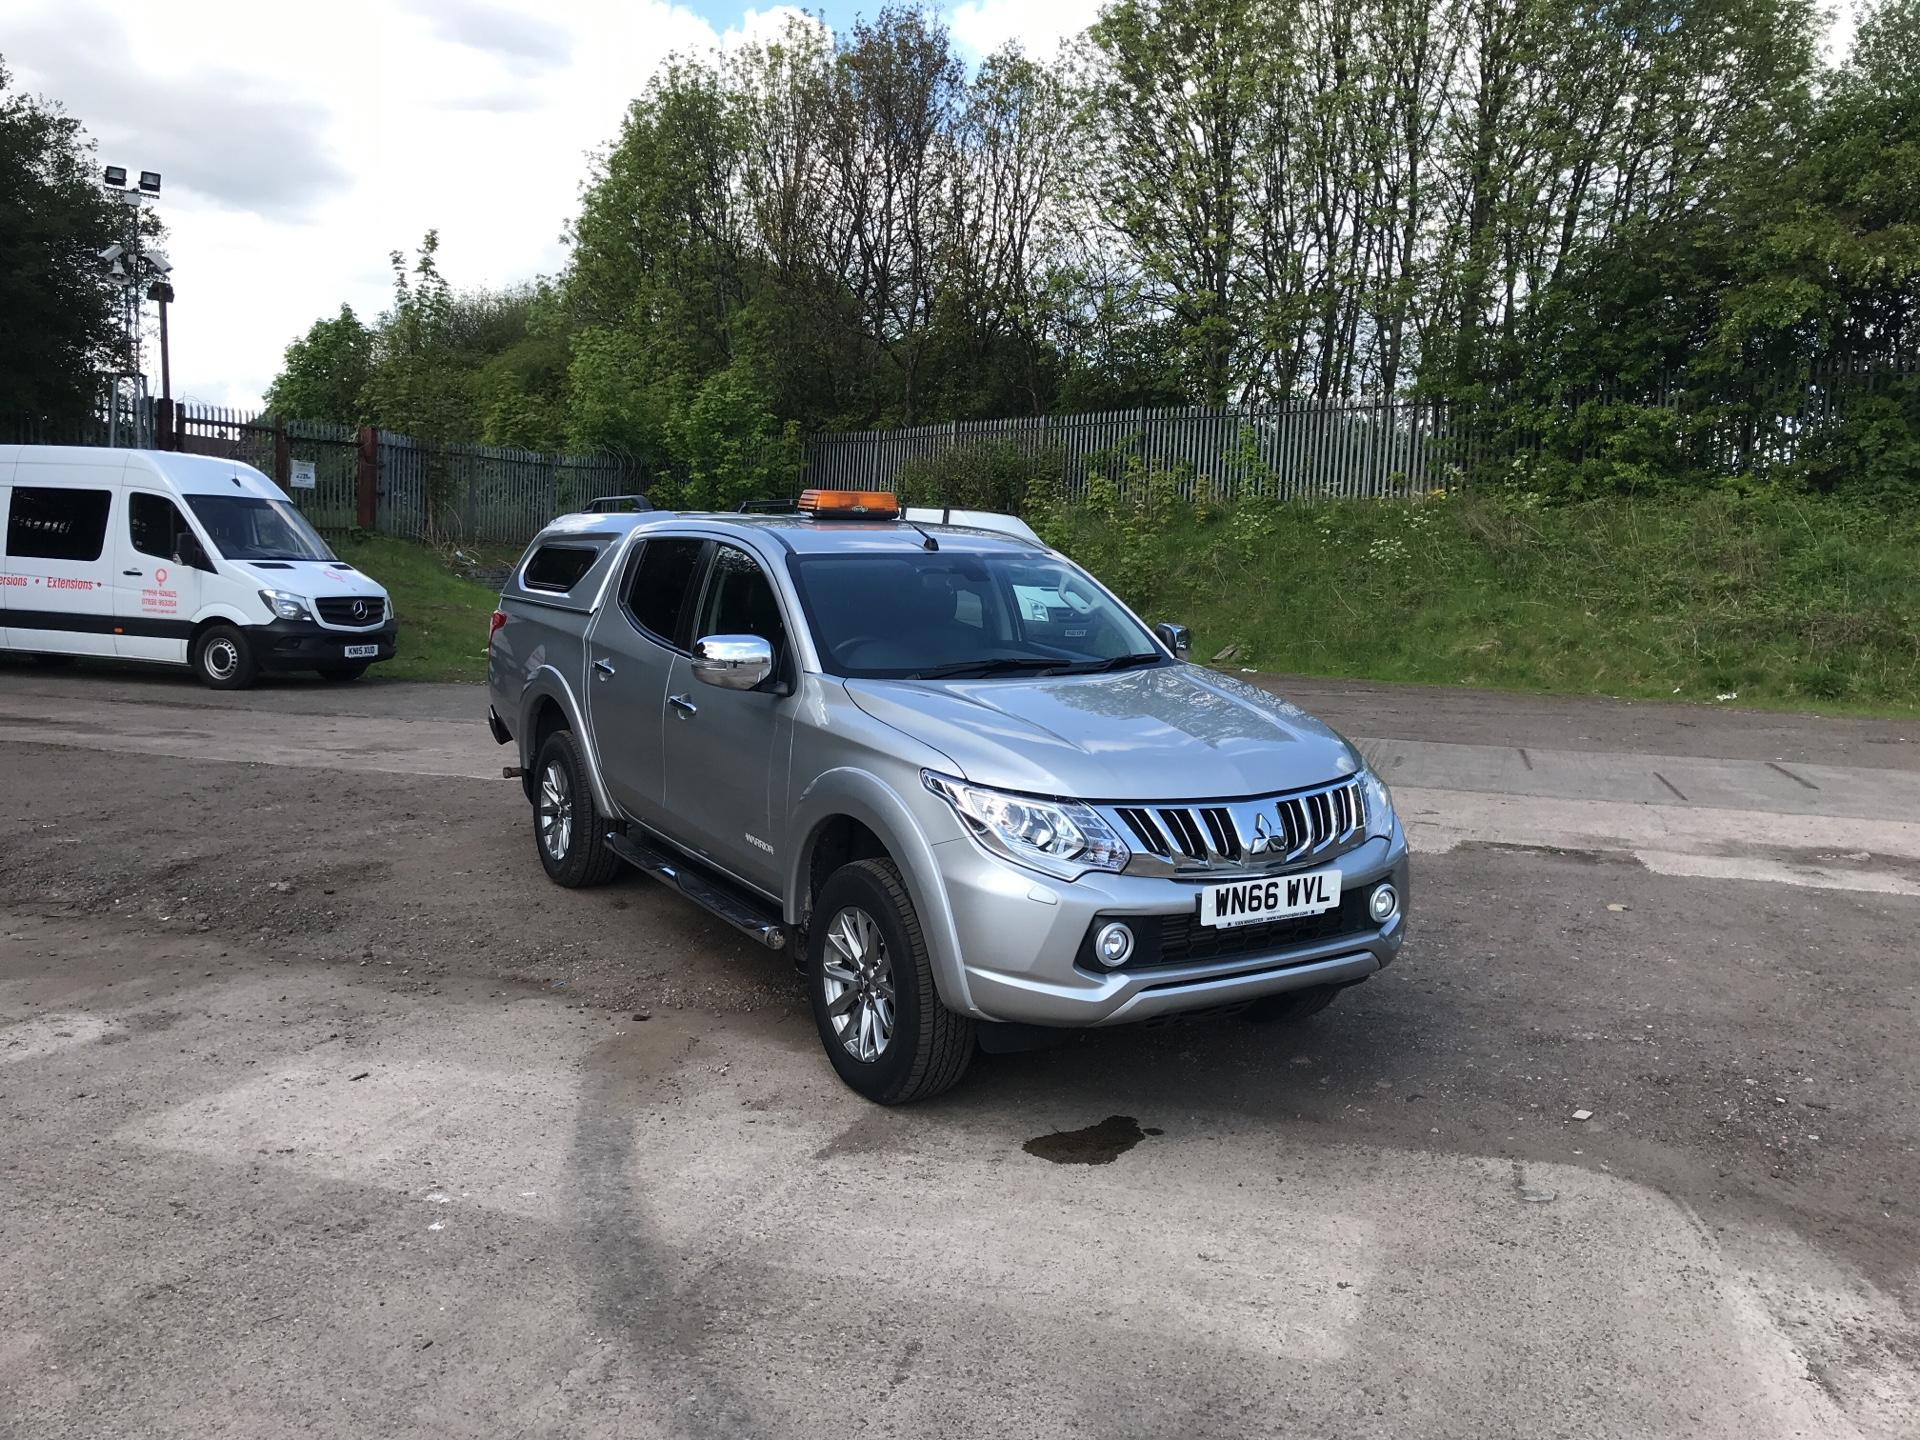 2016 Mitsubishi L200 DOUBLE CAB DI-D 178 WARRIOR 4WD (WN66WVL)